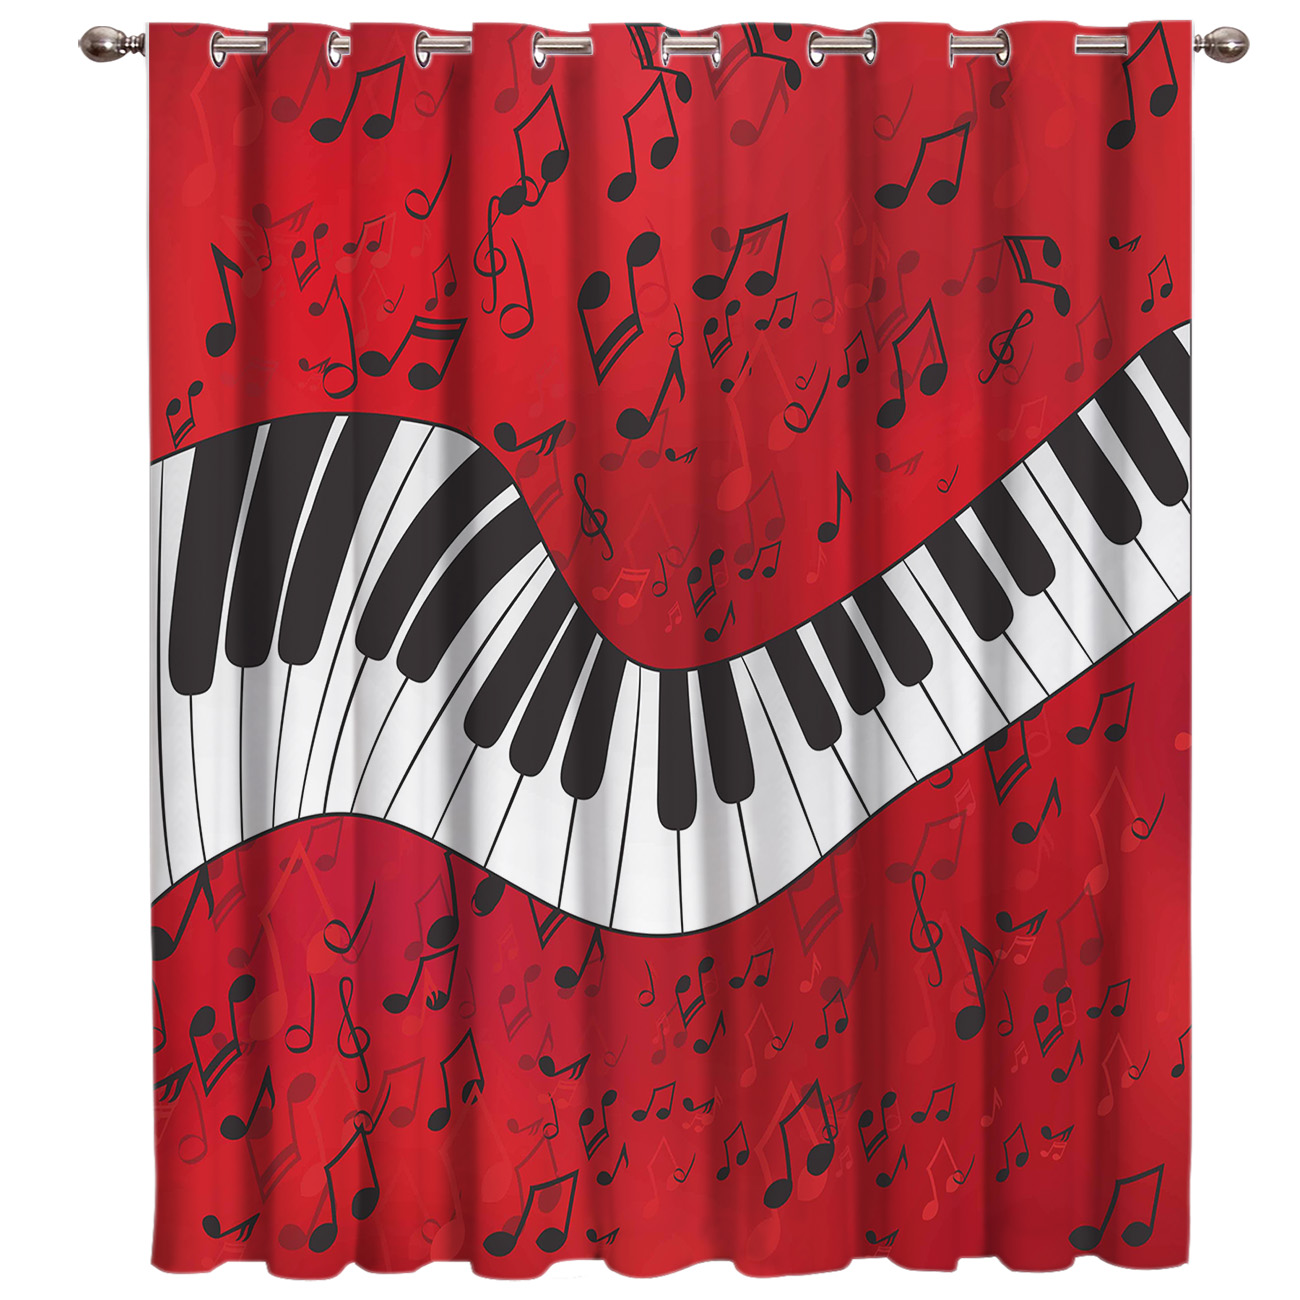 Piano Music Note Red Background Window Treatments Curtains Valance Window Curtains Dark Living Room Bathroom Blackout Fabric Kid